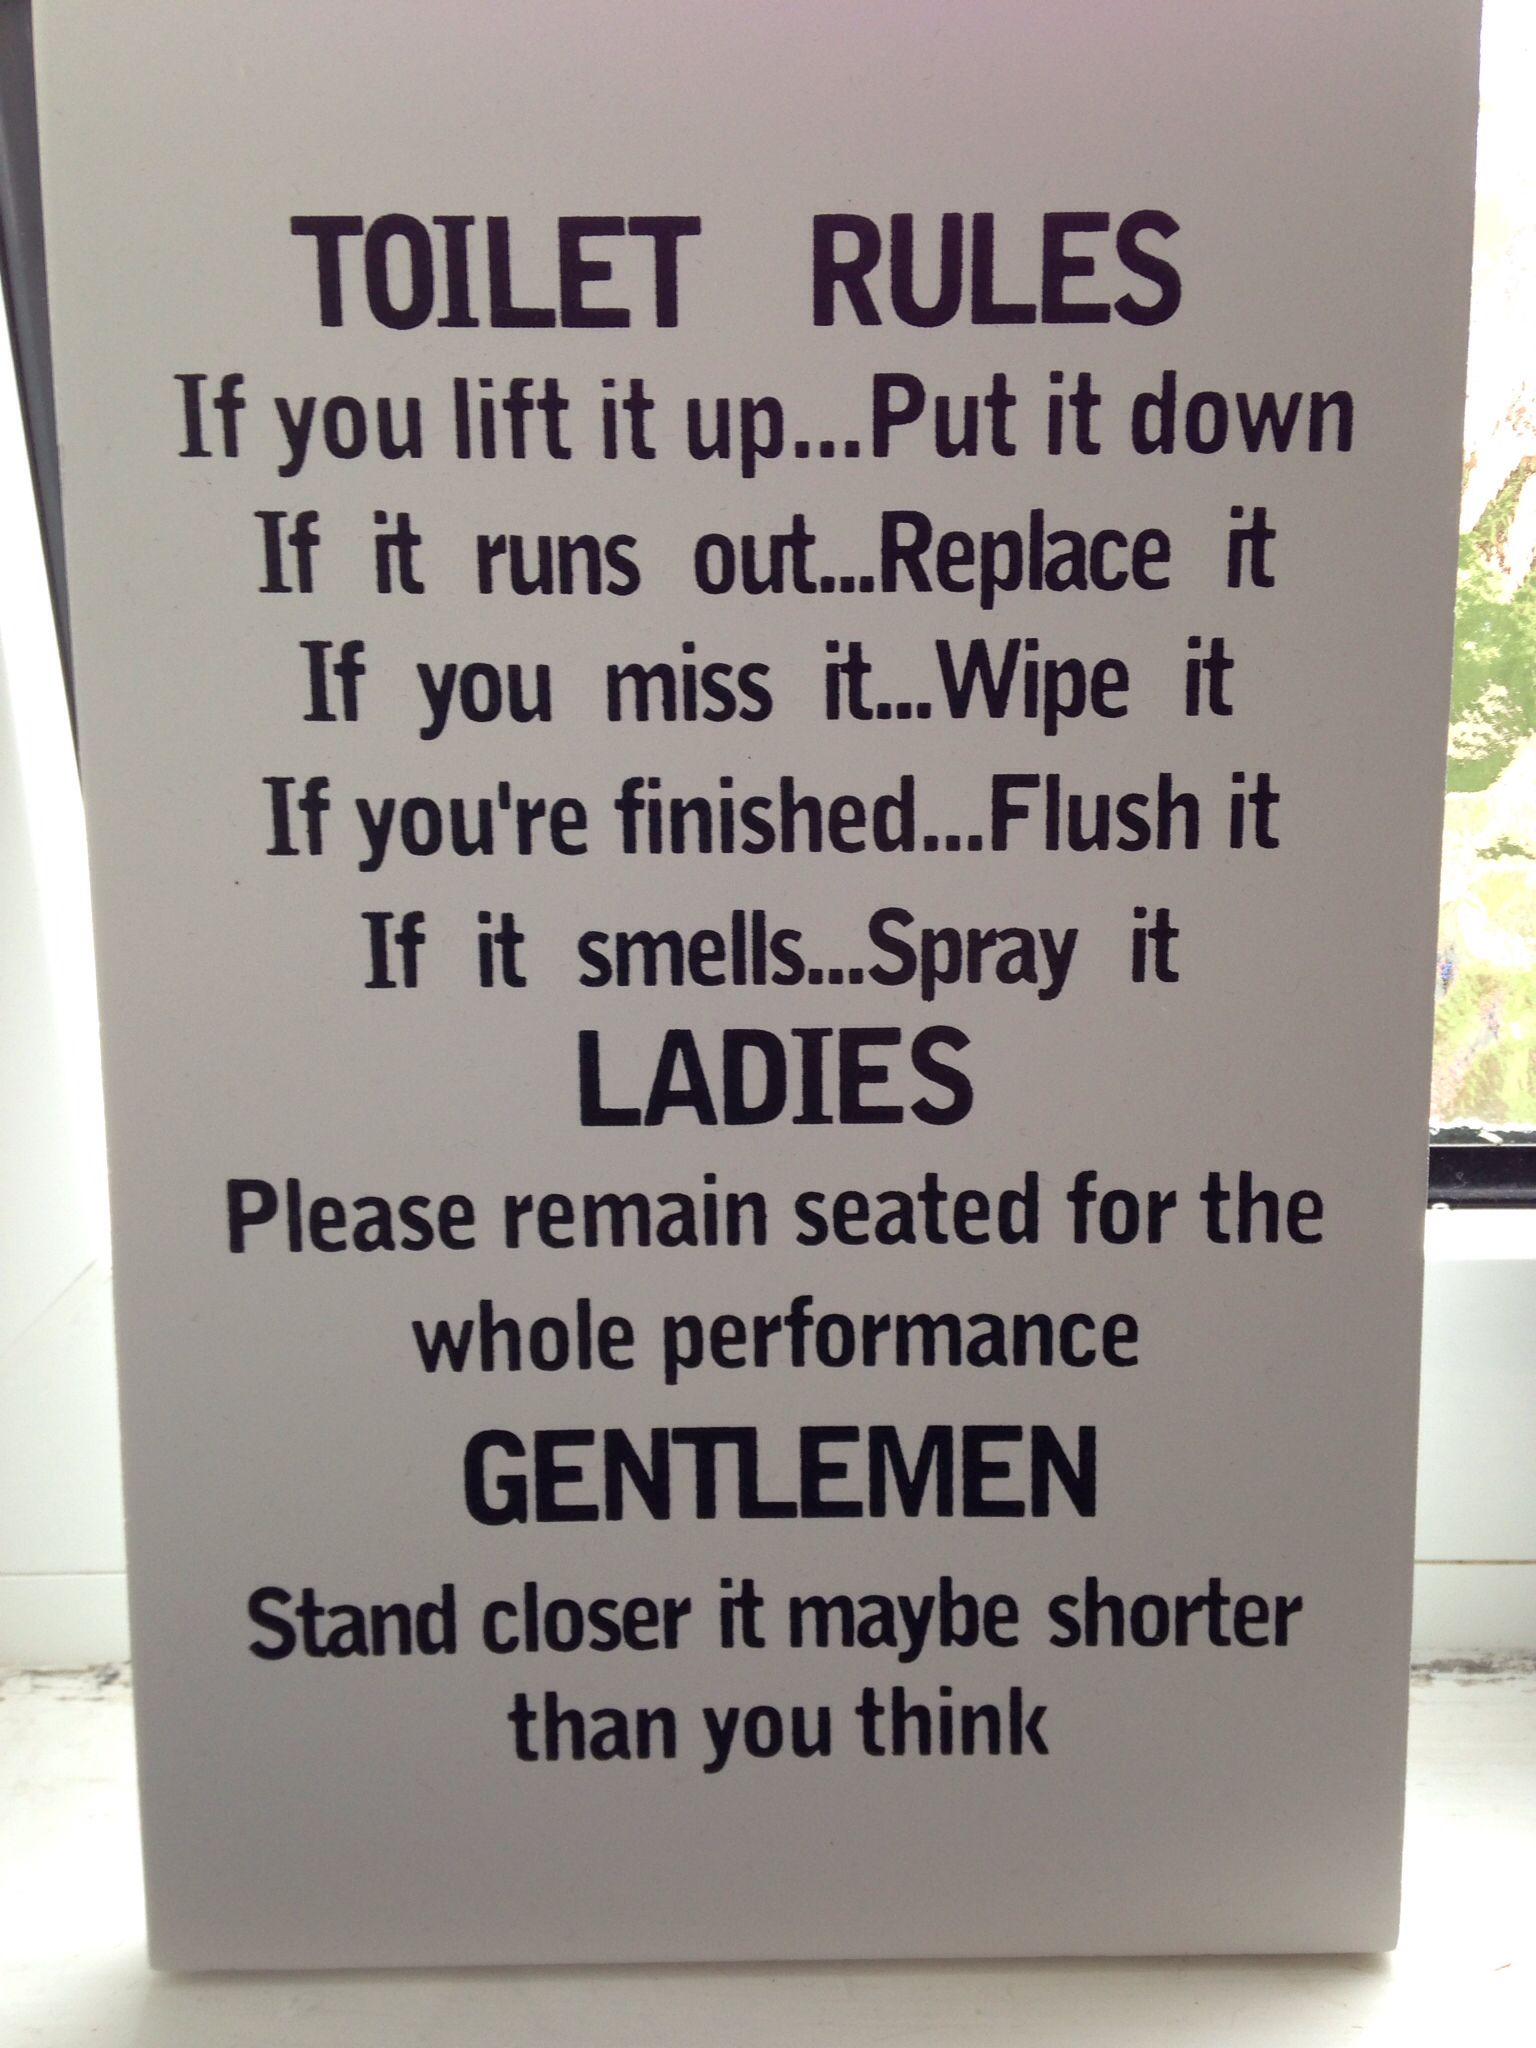 No comment.....Too Gross to even think about....LOL | Too Funny | Pinterest  | English, Funny signs and Toilet